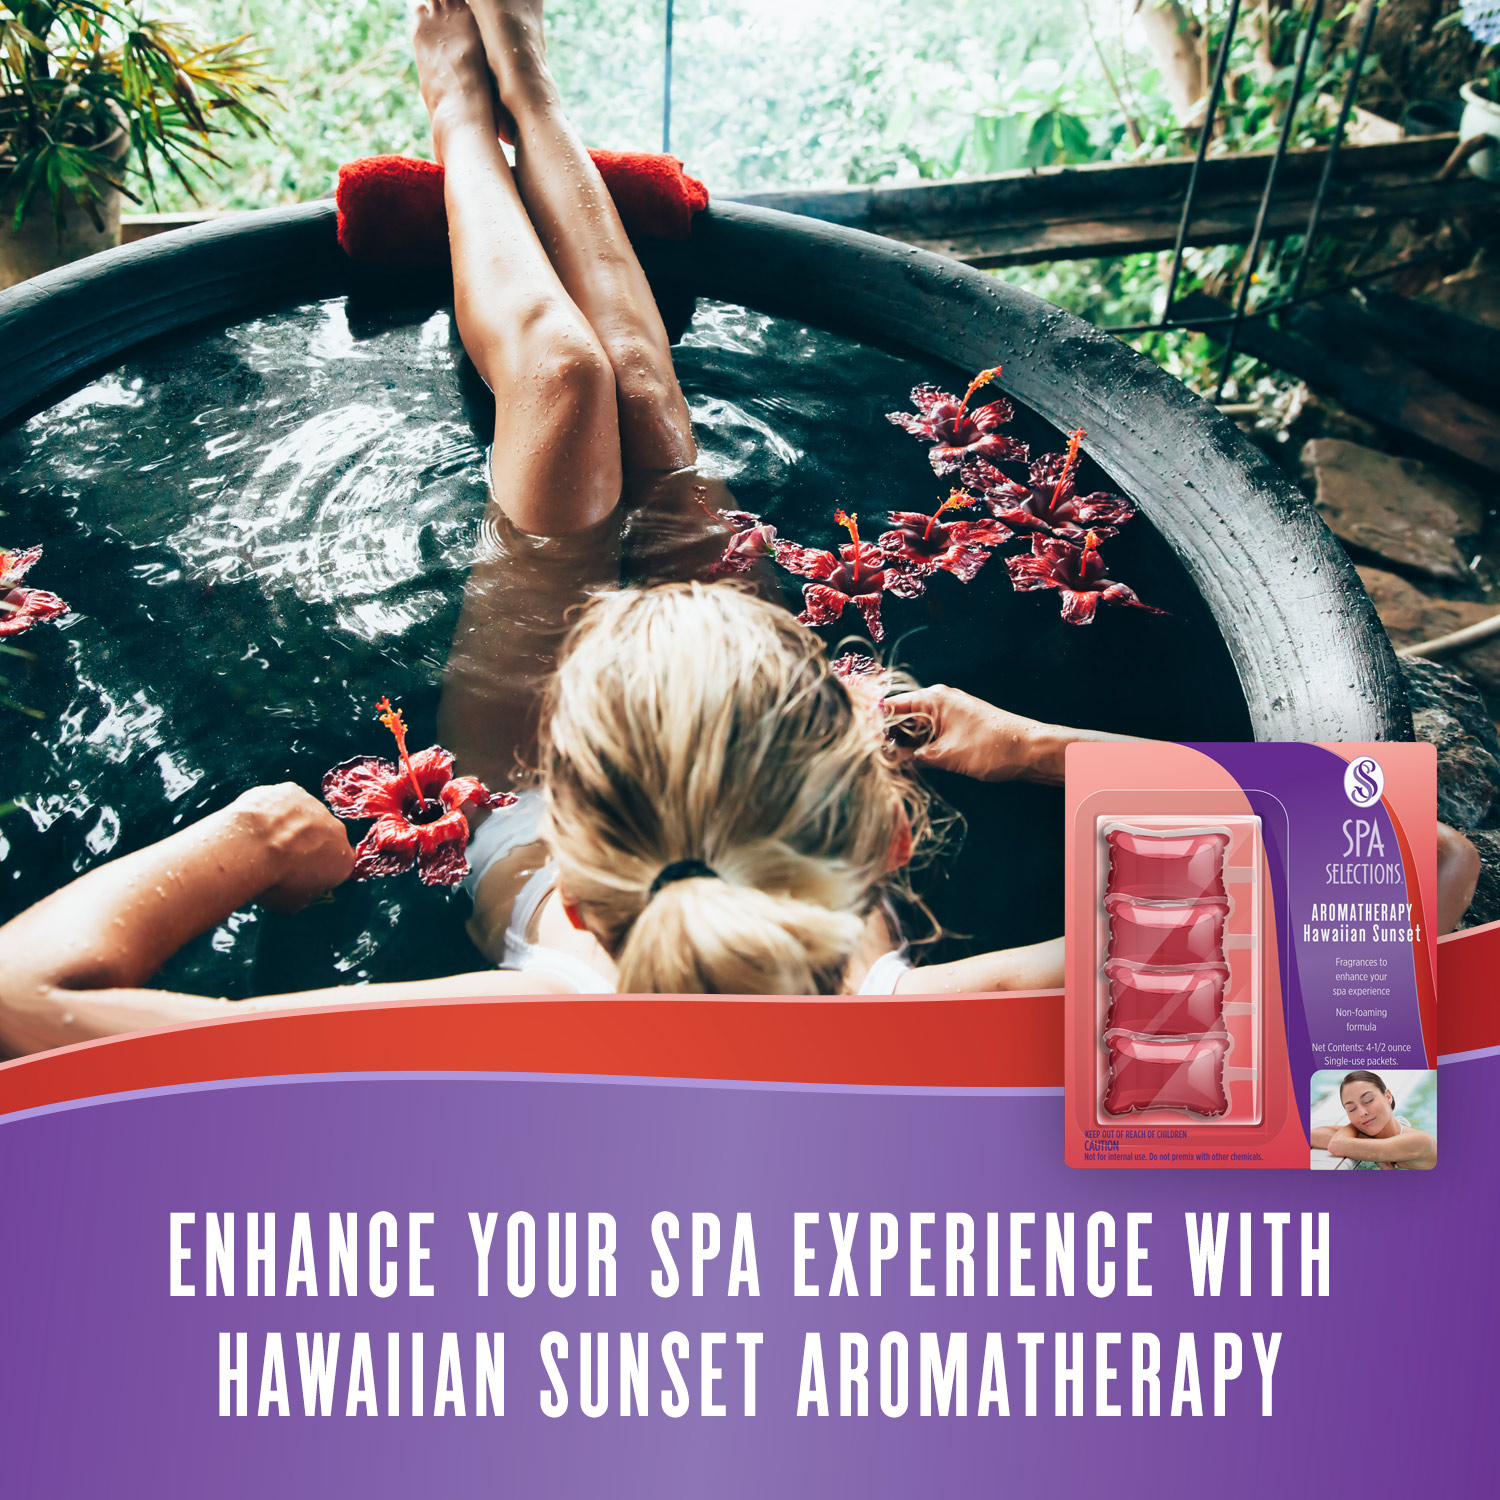 Woman enjoying hot tub overlooking a forest. Enhance your spa experience with Hawaiian Sunset aromatherapy from Spa Selections.